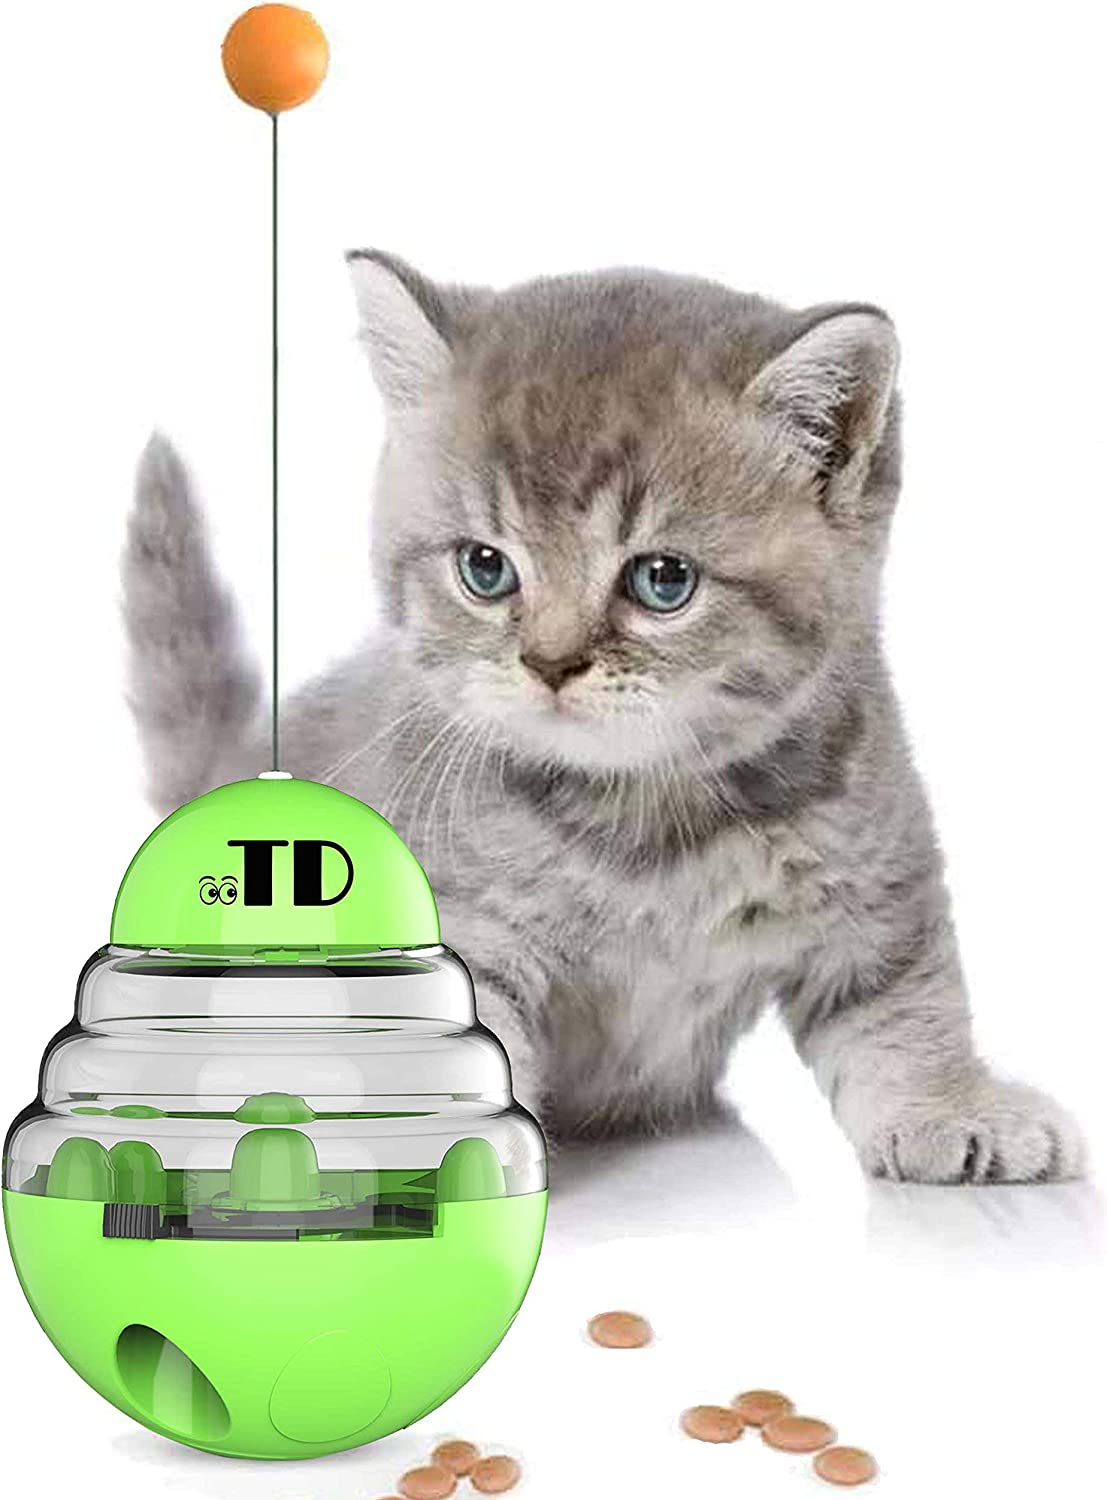 OOTD Cat Tumbler Toy Ball, Cat Slow Feeder Ball, Kitten Roly-Poly Treat Toys, Cat Toys Interactive Food Dispenser, Kitty Slow Food Dispensing Puzzle Toy, Slow Eating Interactive Cat Toy Ball, Green